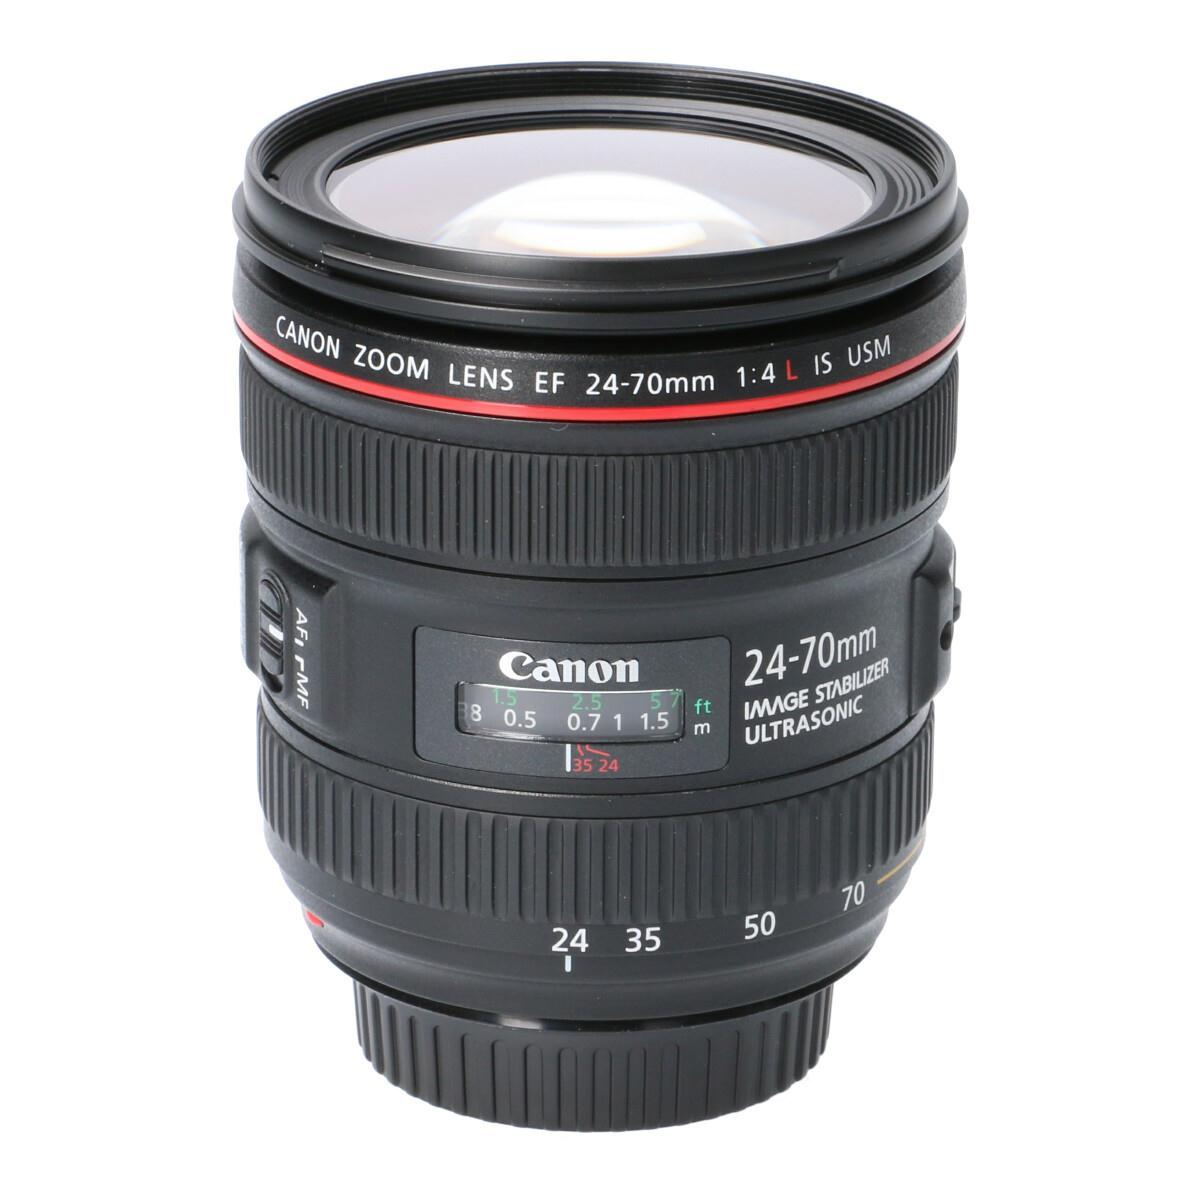 CANON EF24-70mm F4L IS USM【中古】